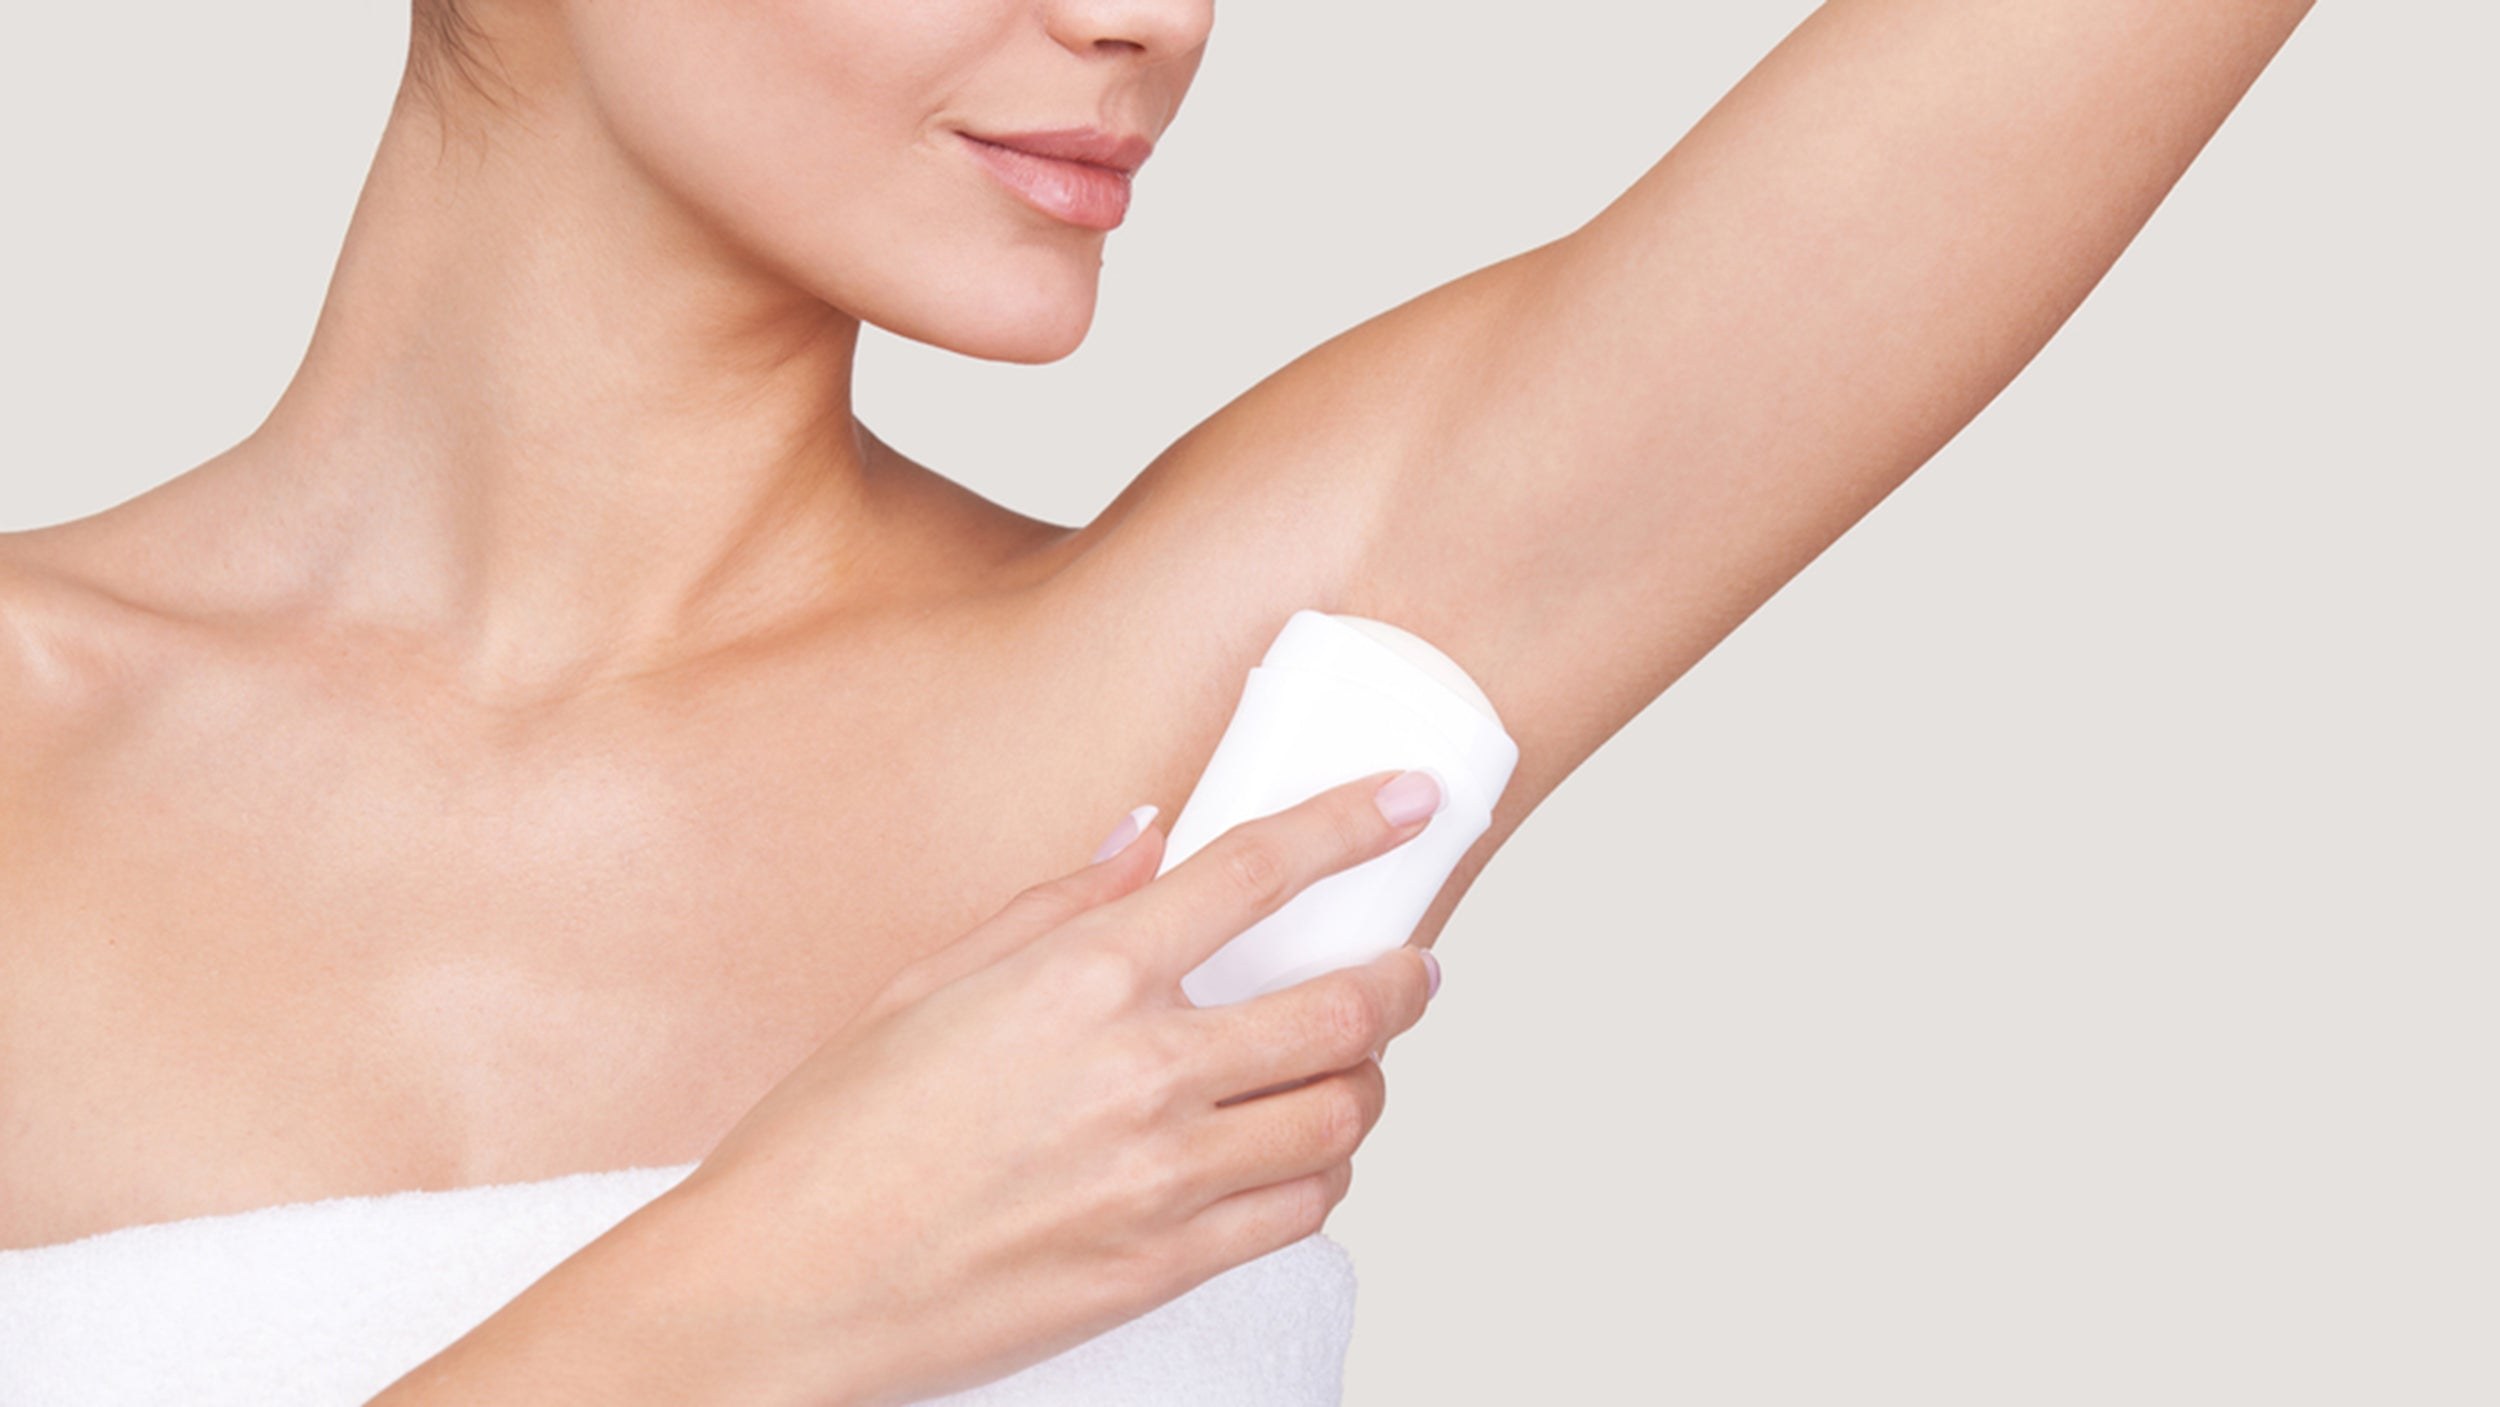 Should you stop using deodorant?